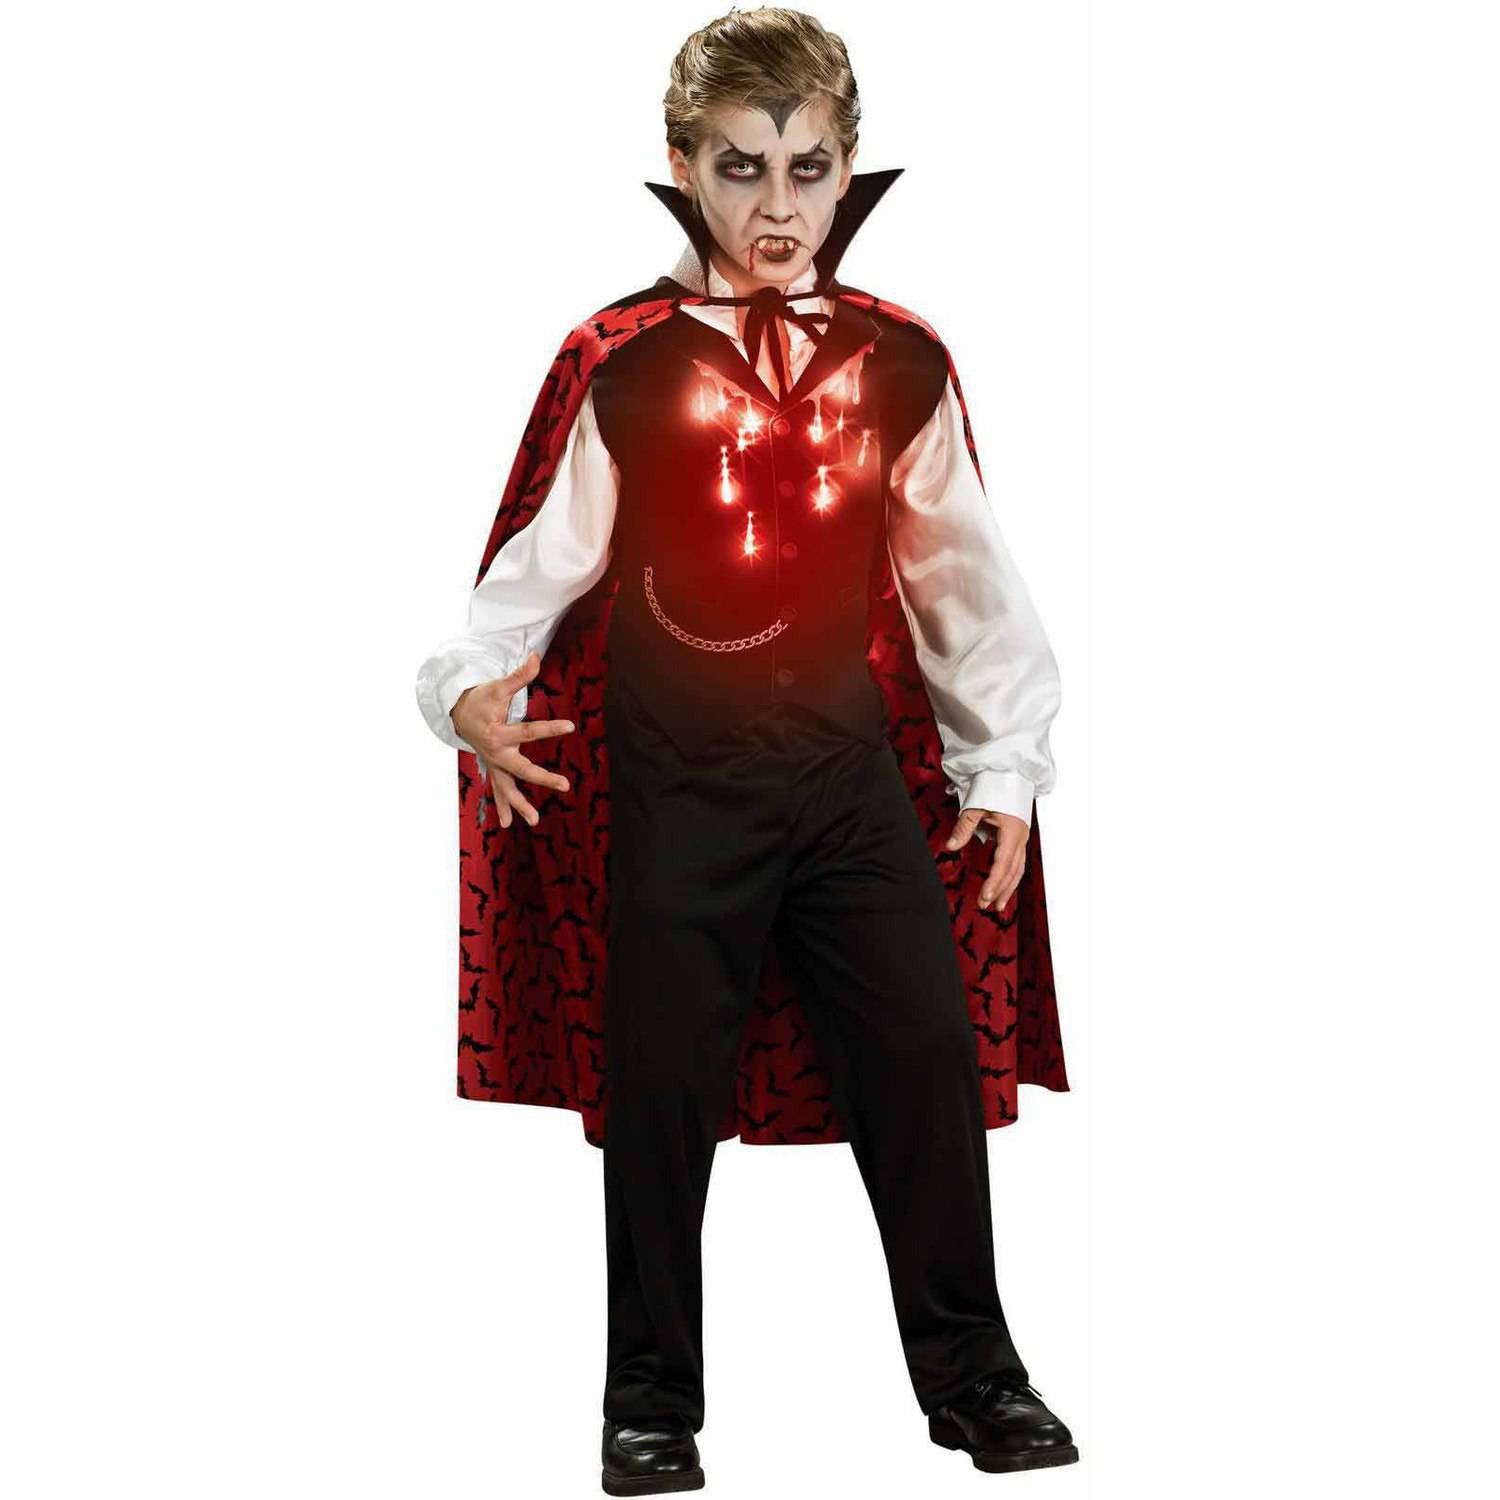 Lite-Up Vampire Boys' Child Halloween Costume